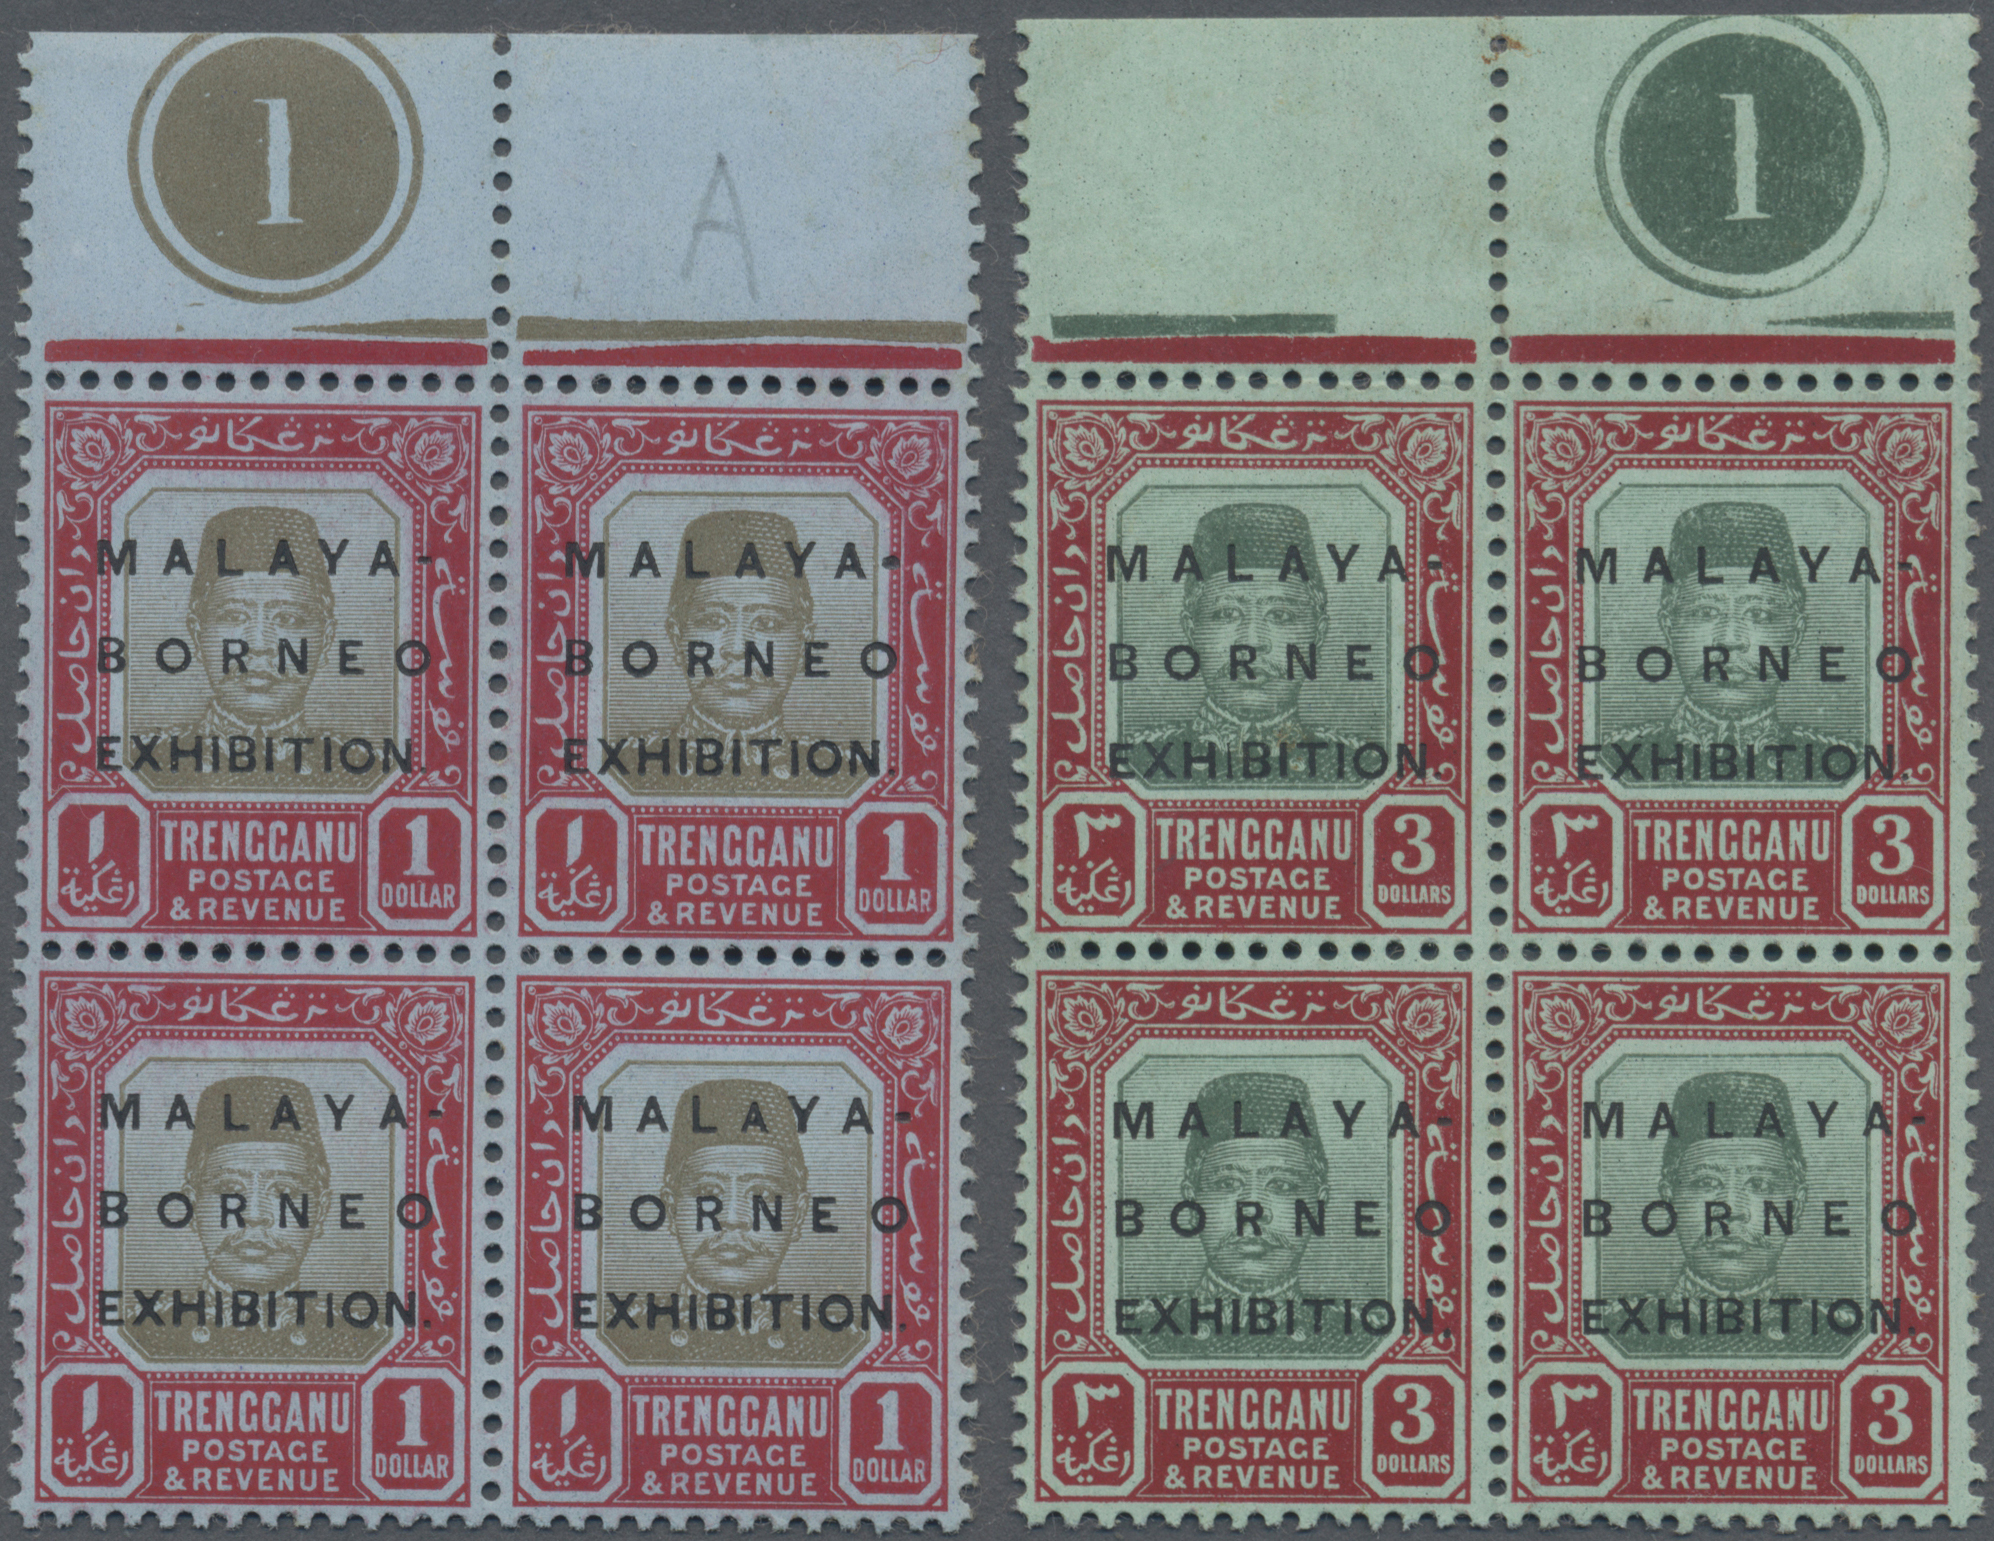 Lot 10128 - Malaiische Staaten - Trengganu  -  Auktionshaus Christoph Gärtner GmbH & Co. KG Philately: ASIA single lots including Special Catalog Malaya Auction #39 Day 3